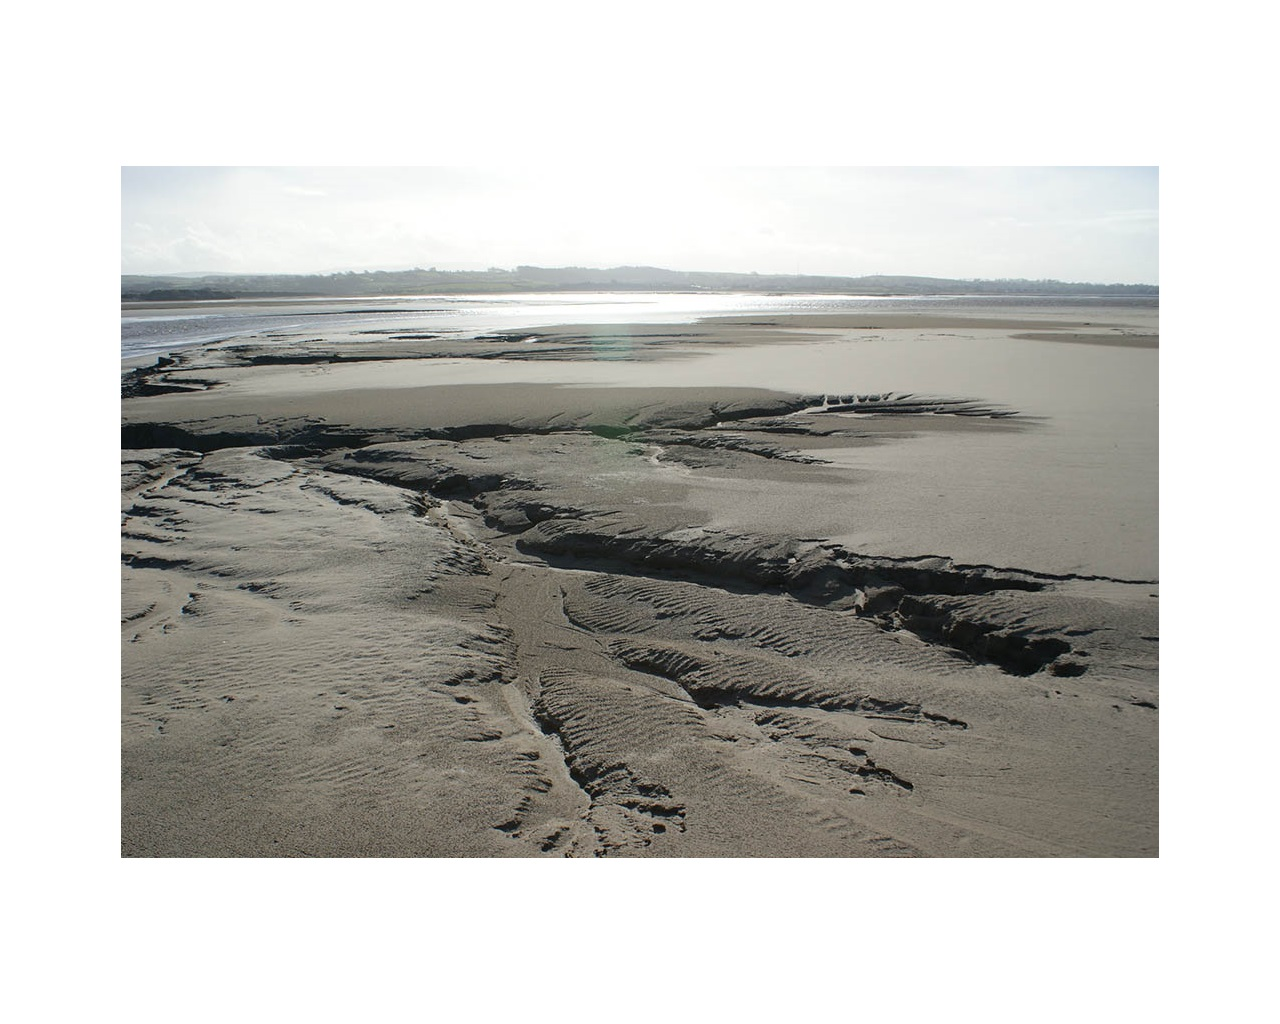 Mudflat in Chichester Harbour